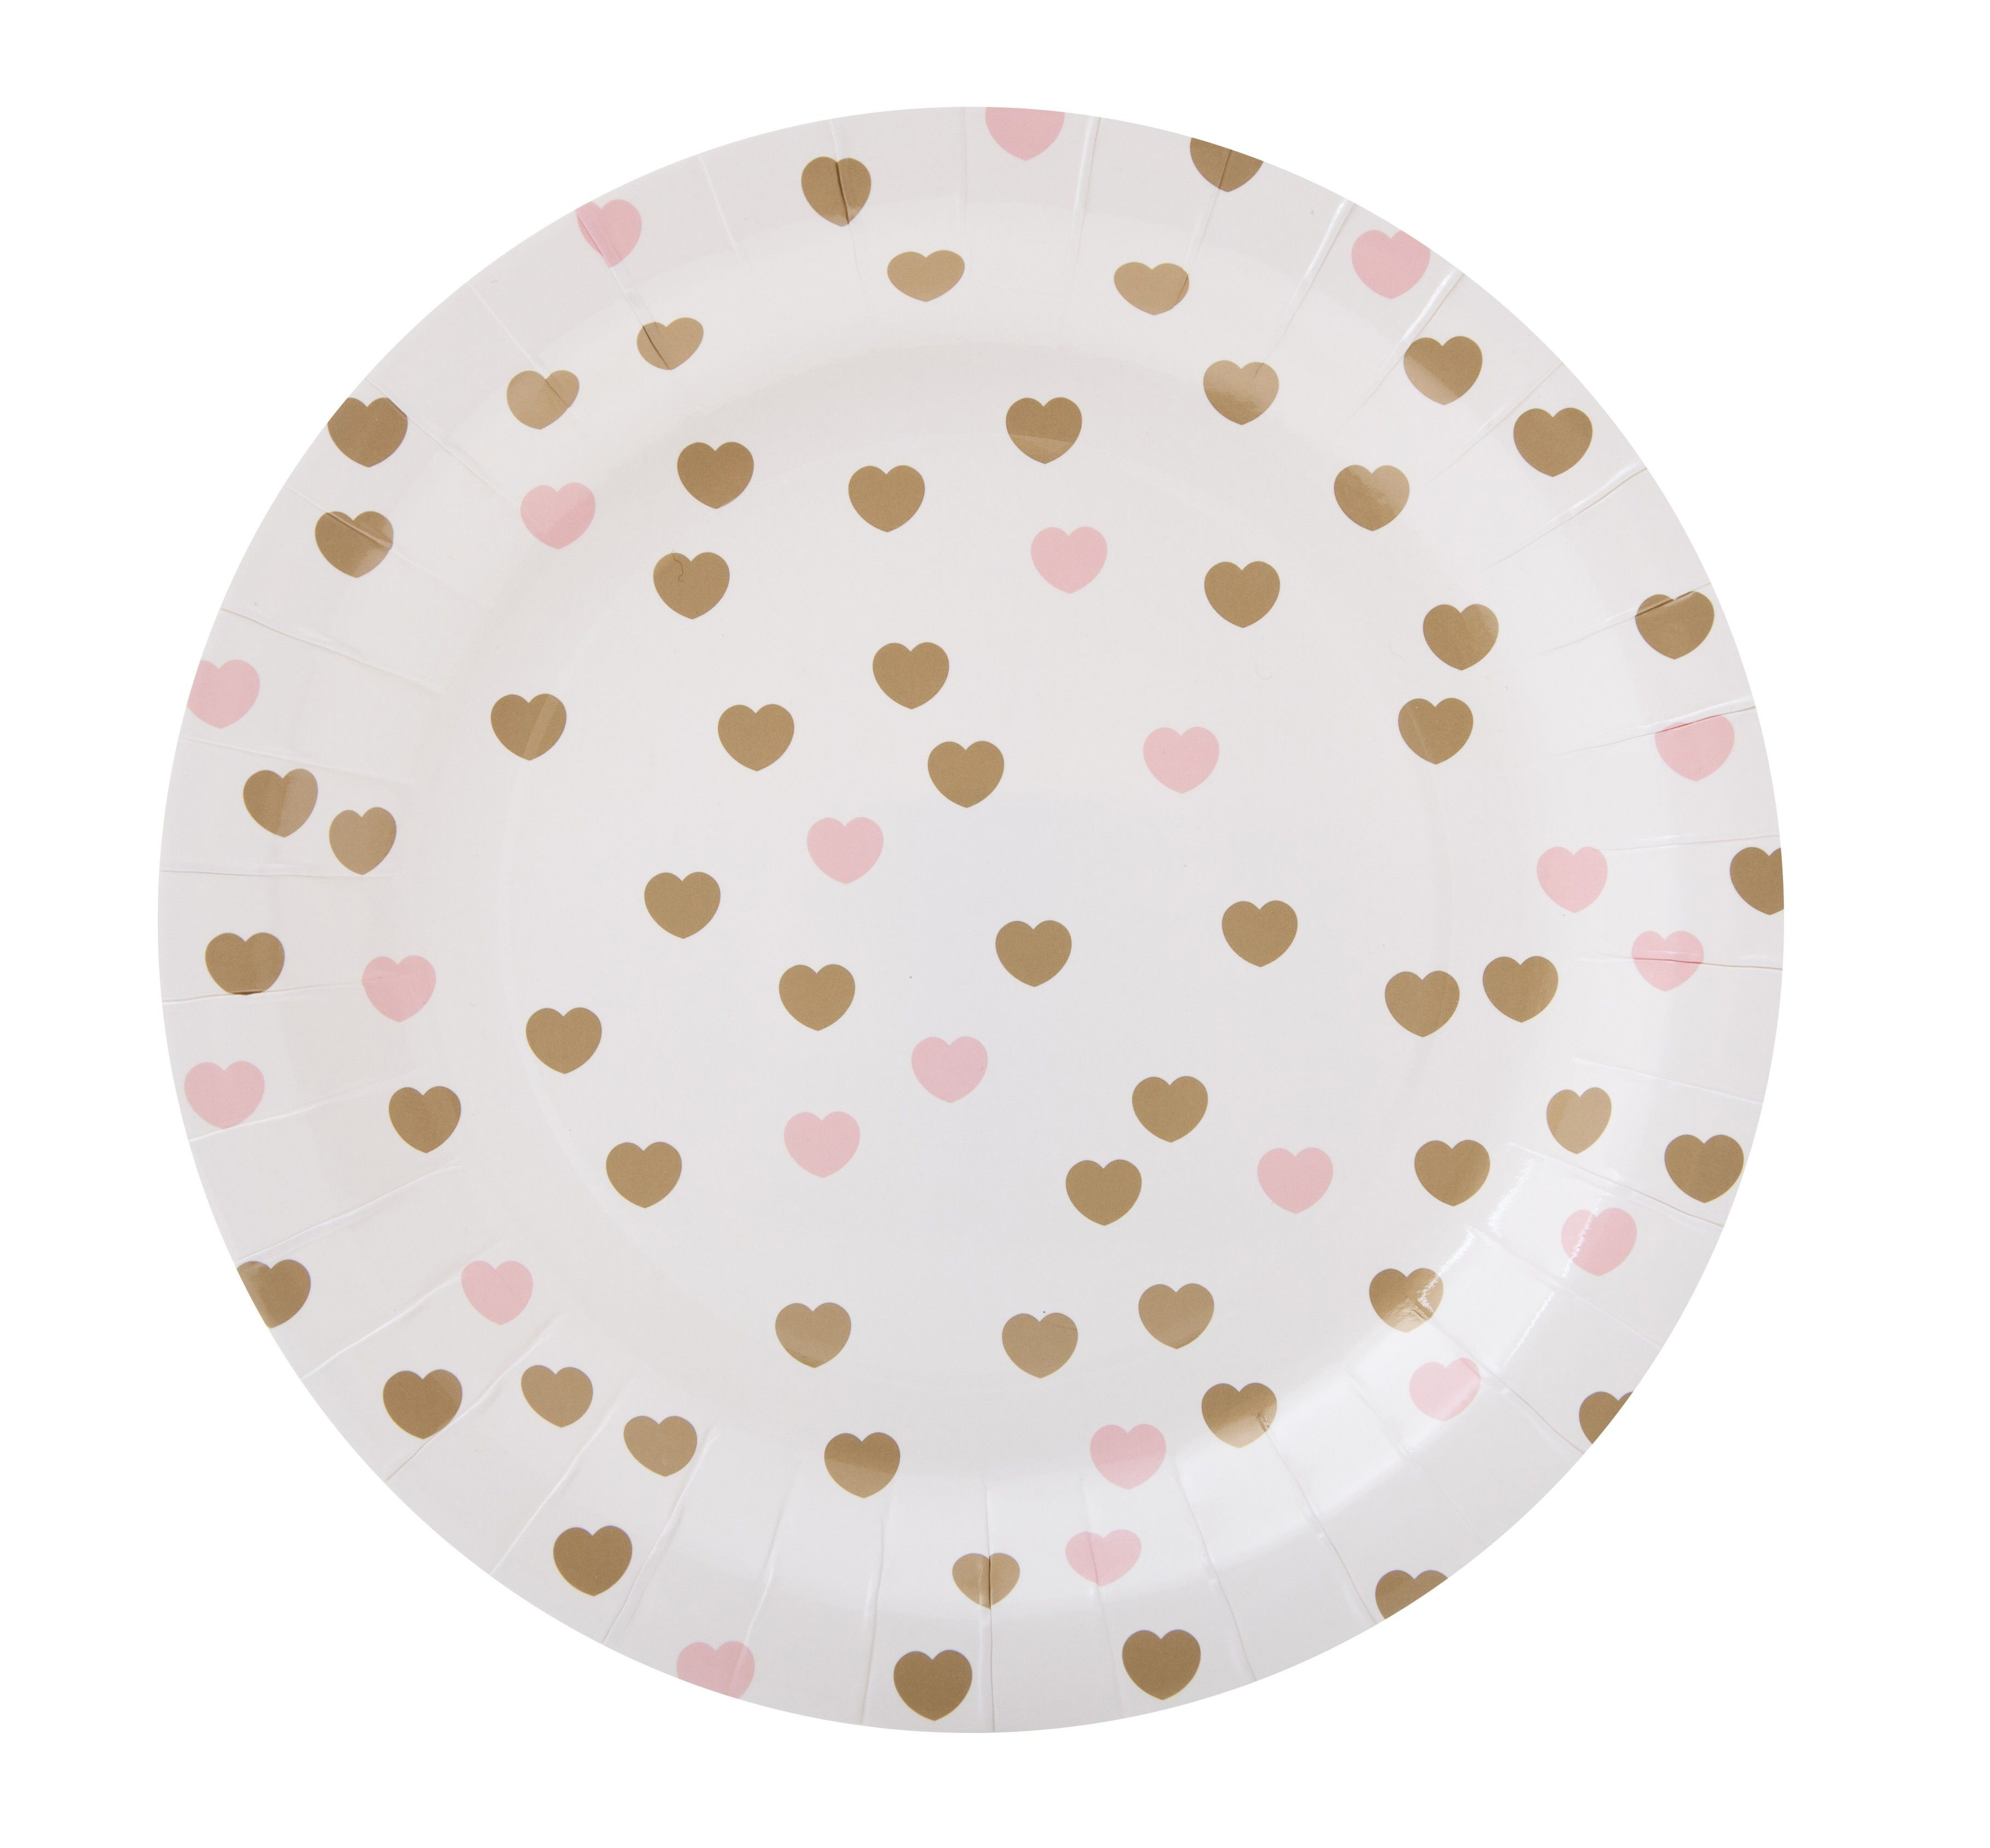 Baby Pink u0026 Gold Heart Paper Plate  The Party Cupboard Online Party Supplies Store Australia  sc 1 st  Pinterest & Baby Pink u0026 Gold Heart Paper Plate : The Party Cupboard Online Party ...